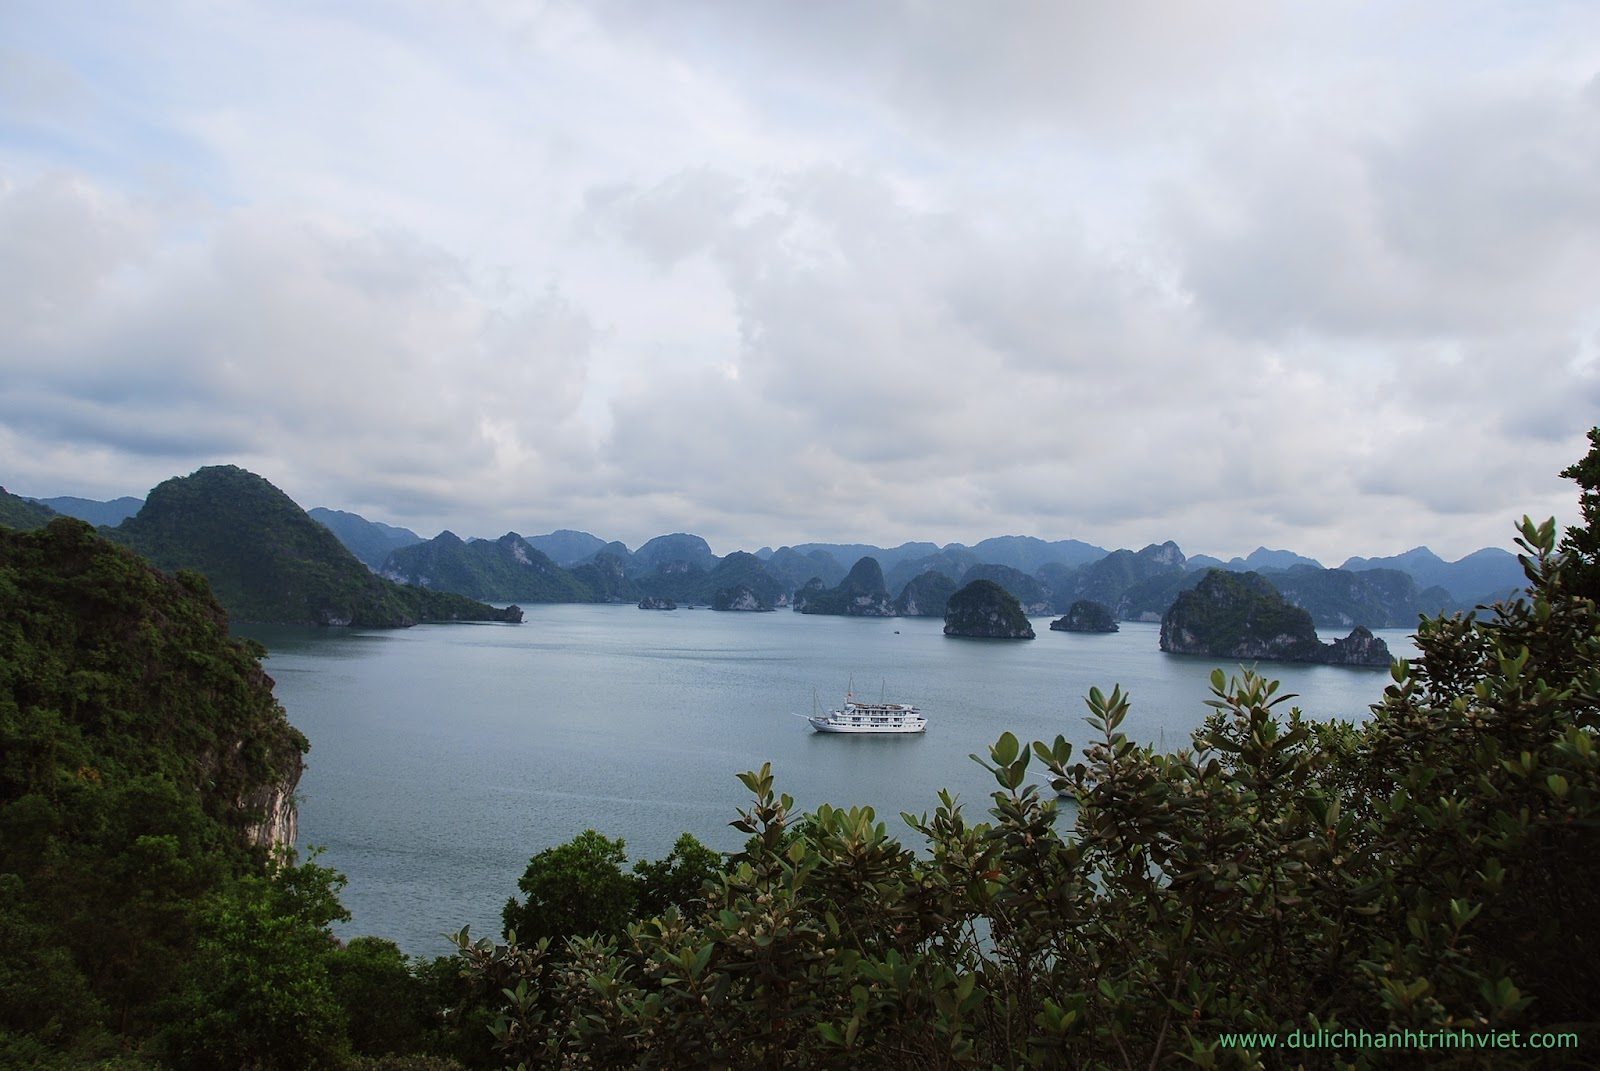 Baie d'Halong - Descente du dragon